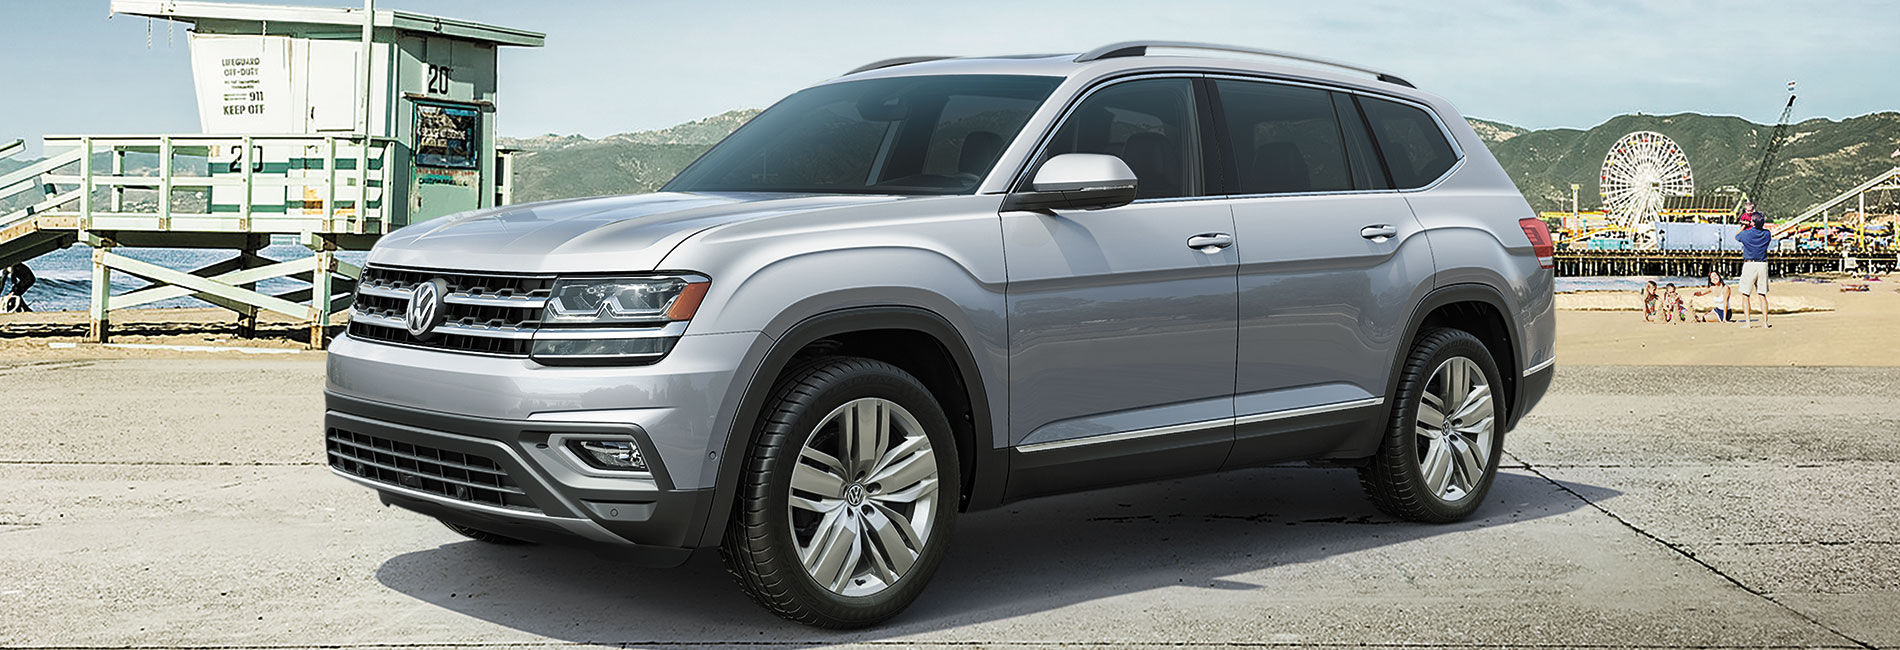 Volkswagen Atlas Exterior Vehicle Features